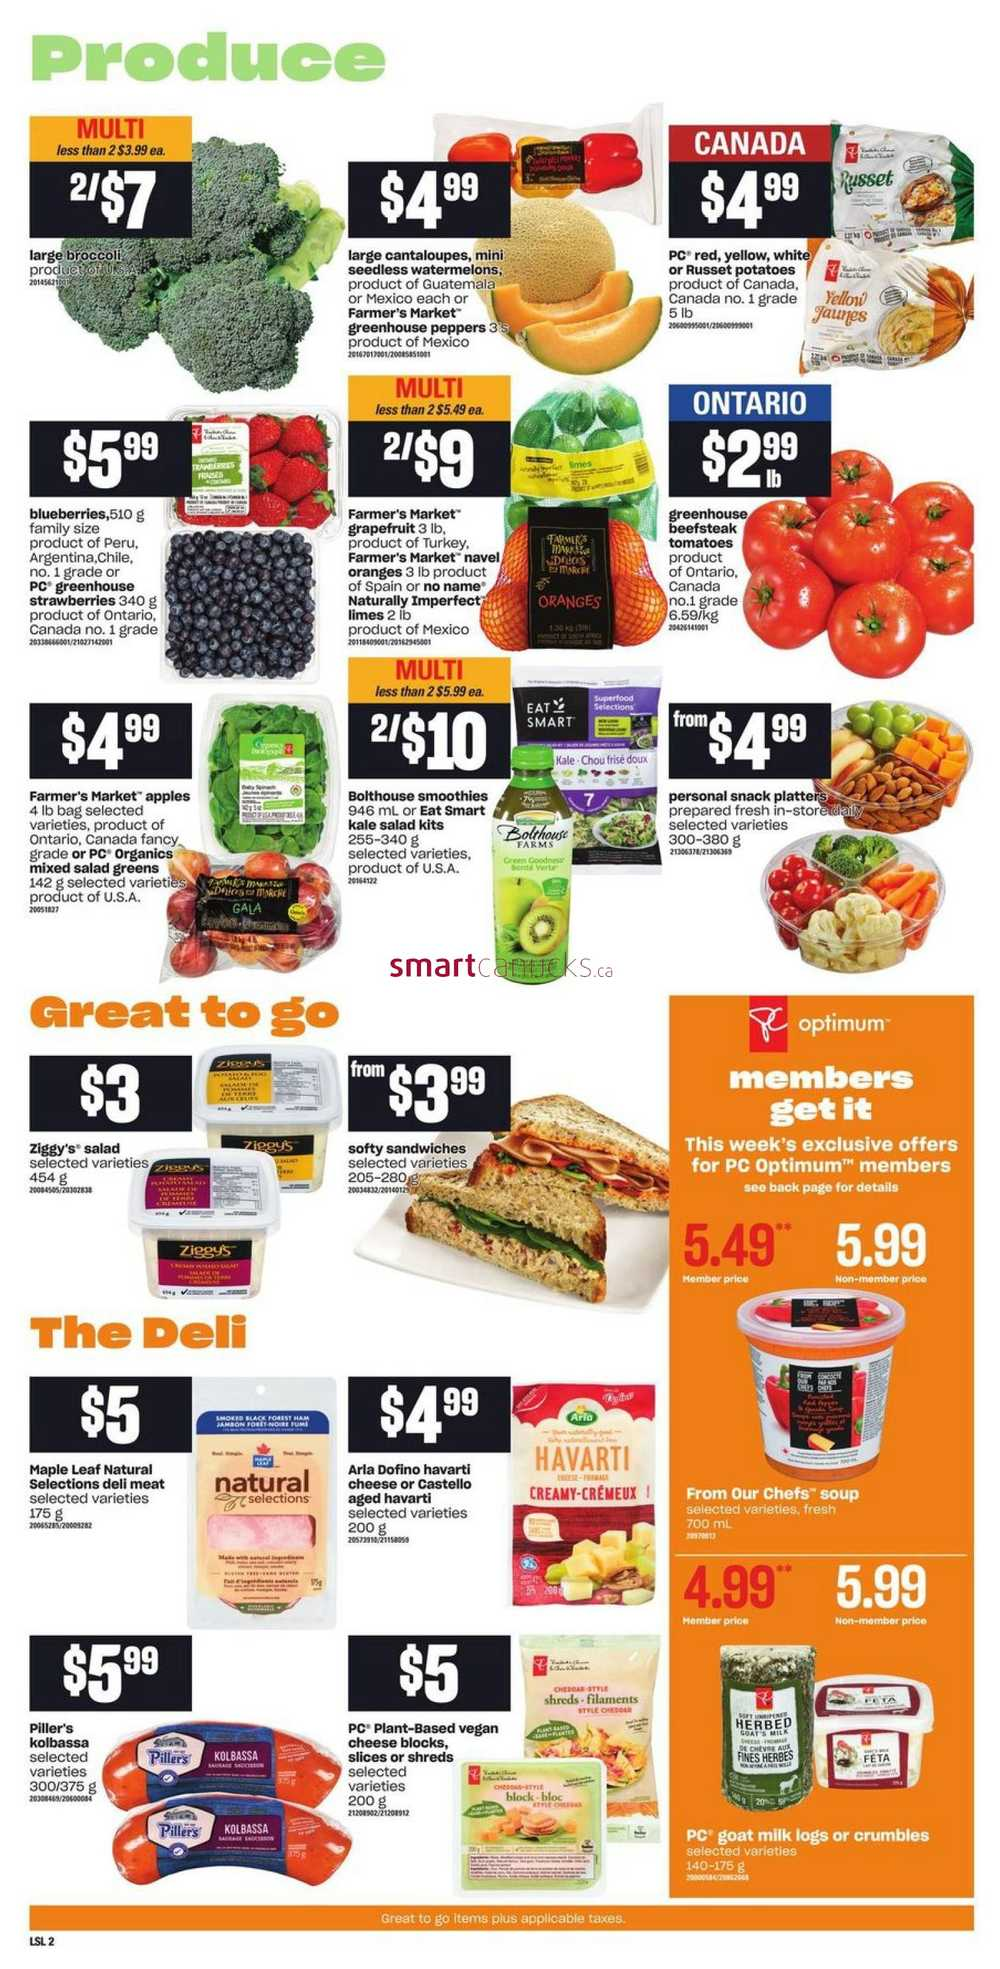 Loblaws Grocery Flyers & Coupons   Loblaws Grocery Flyers ...